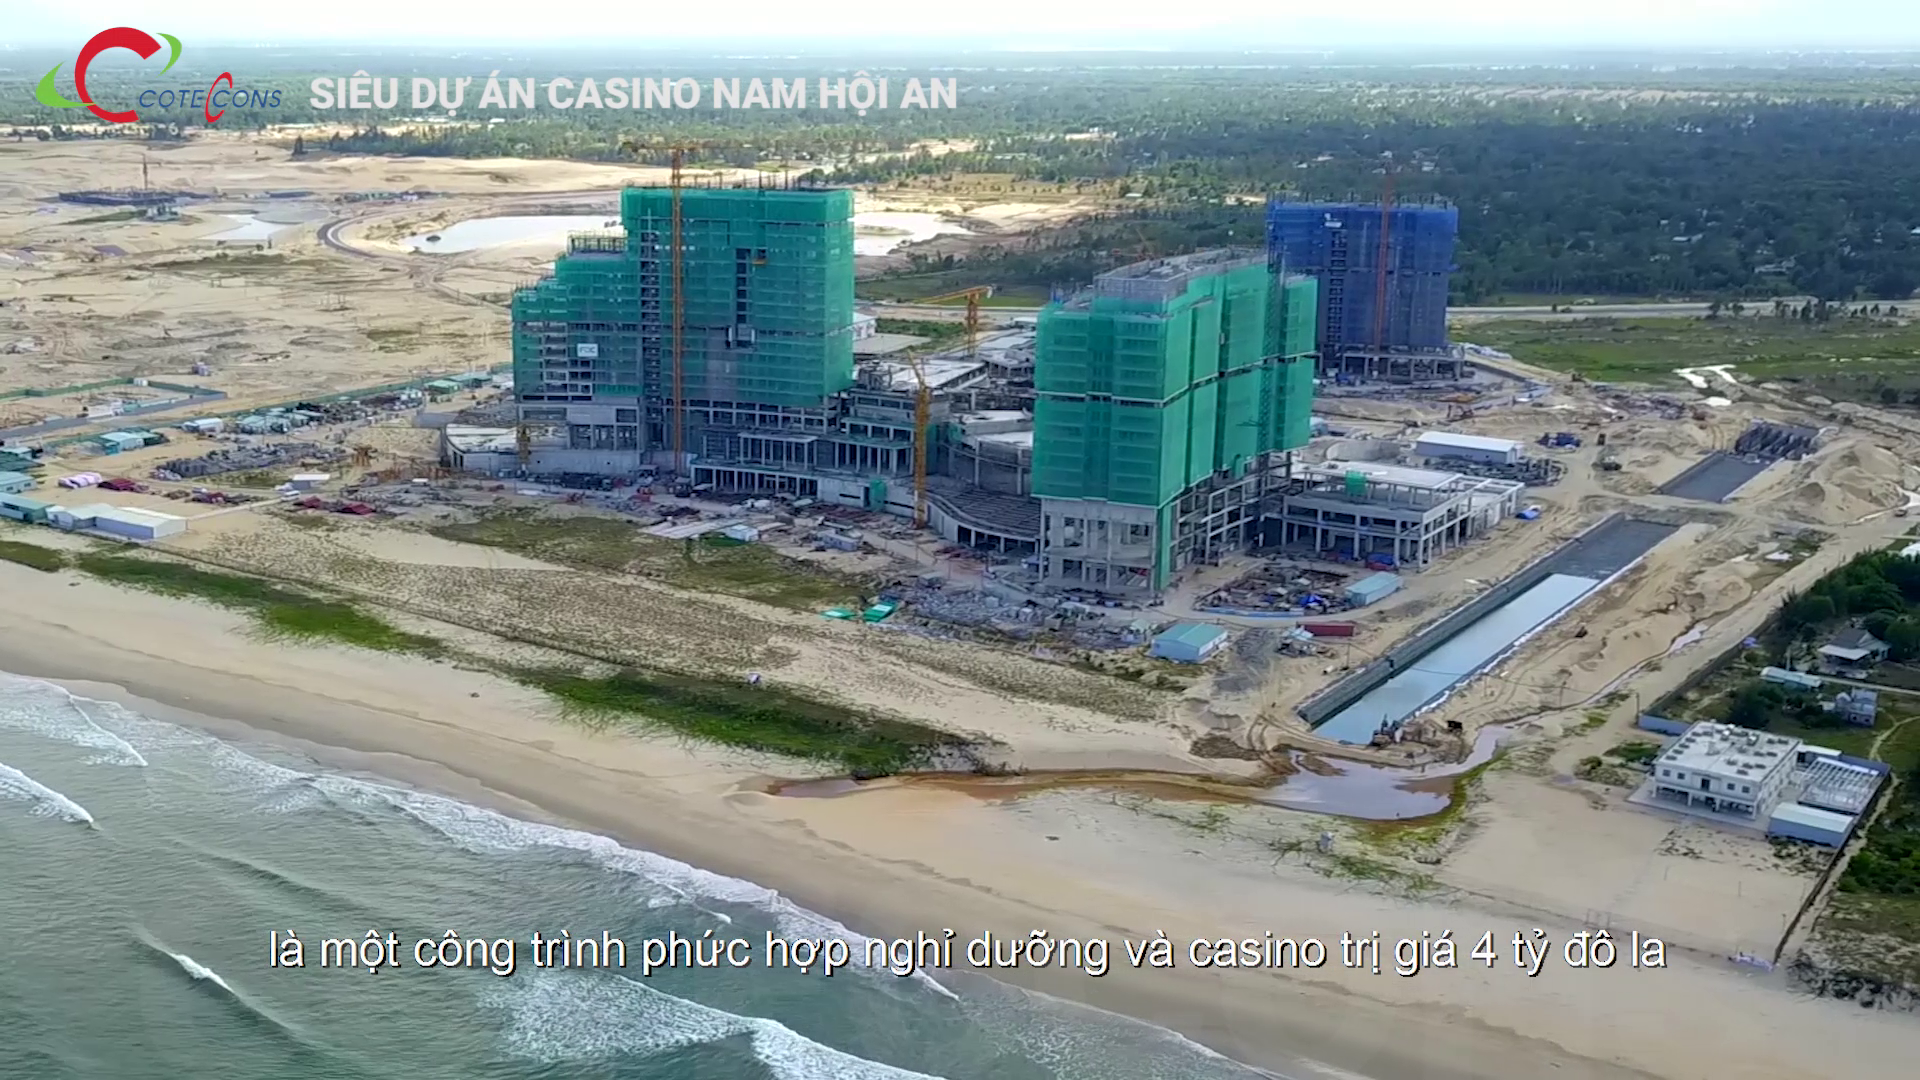 Casino Nam Hoi An Project